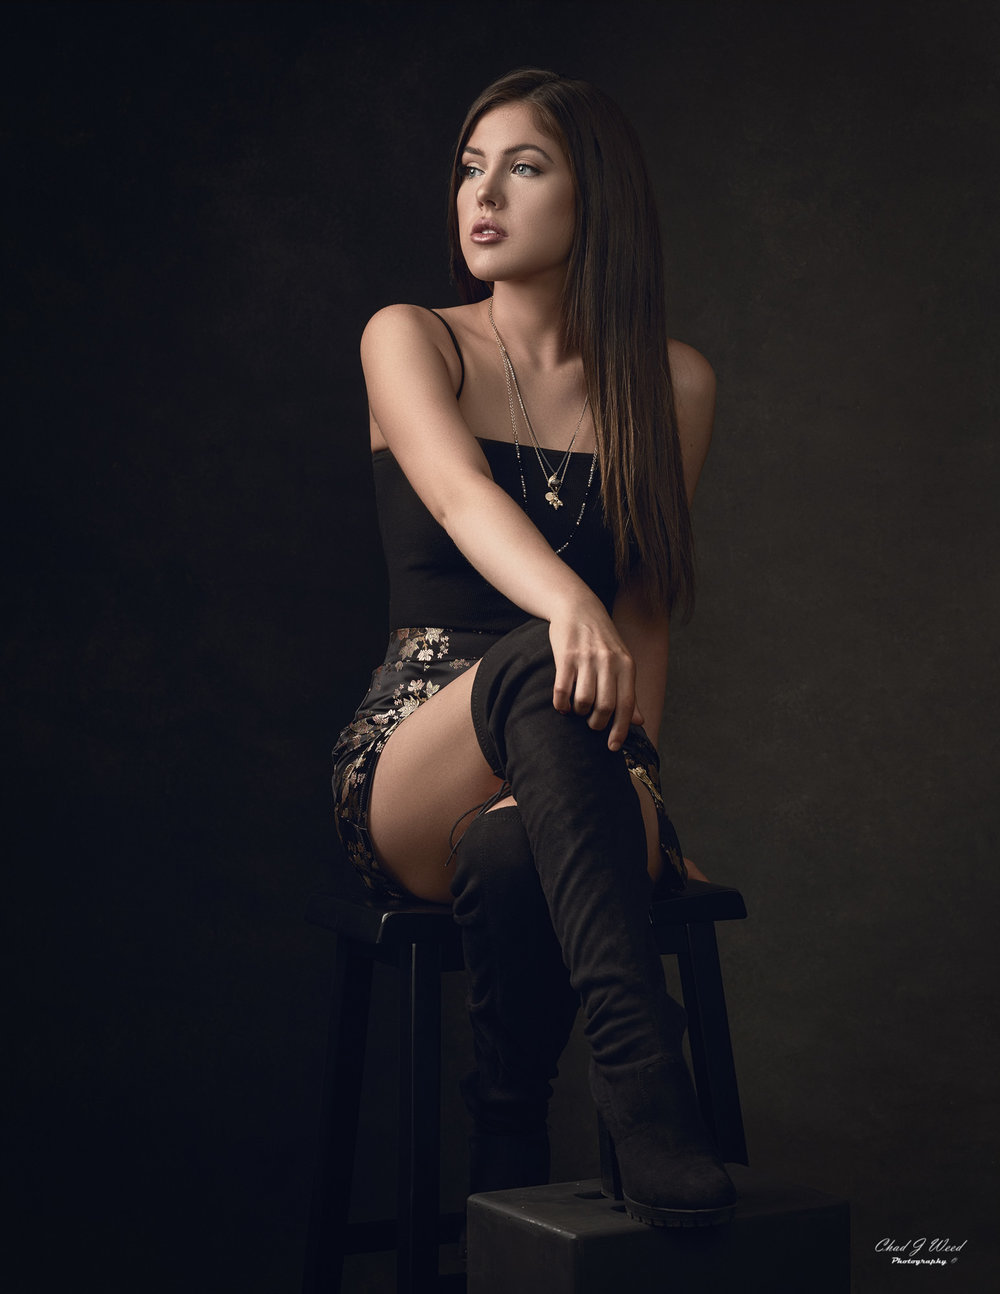 Arizona Fashion Photographer Chad Weed with Fashion Model Jasmine - Black Skirt 2